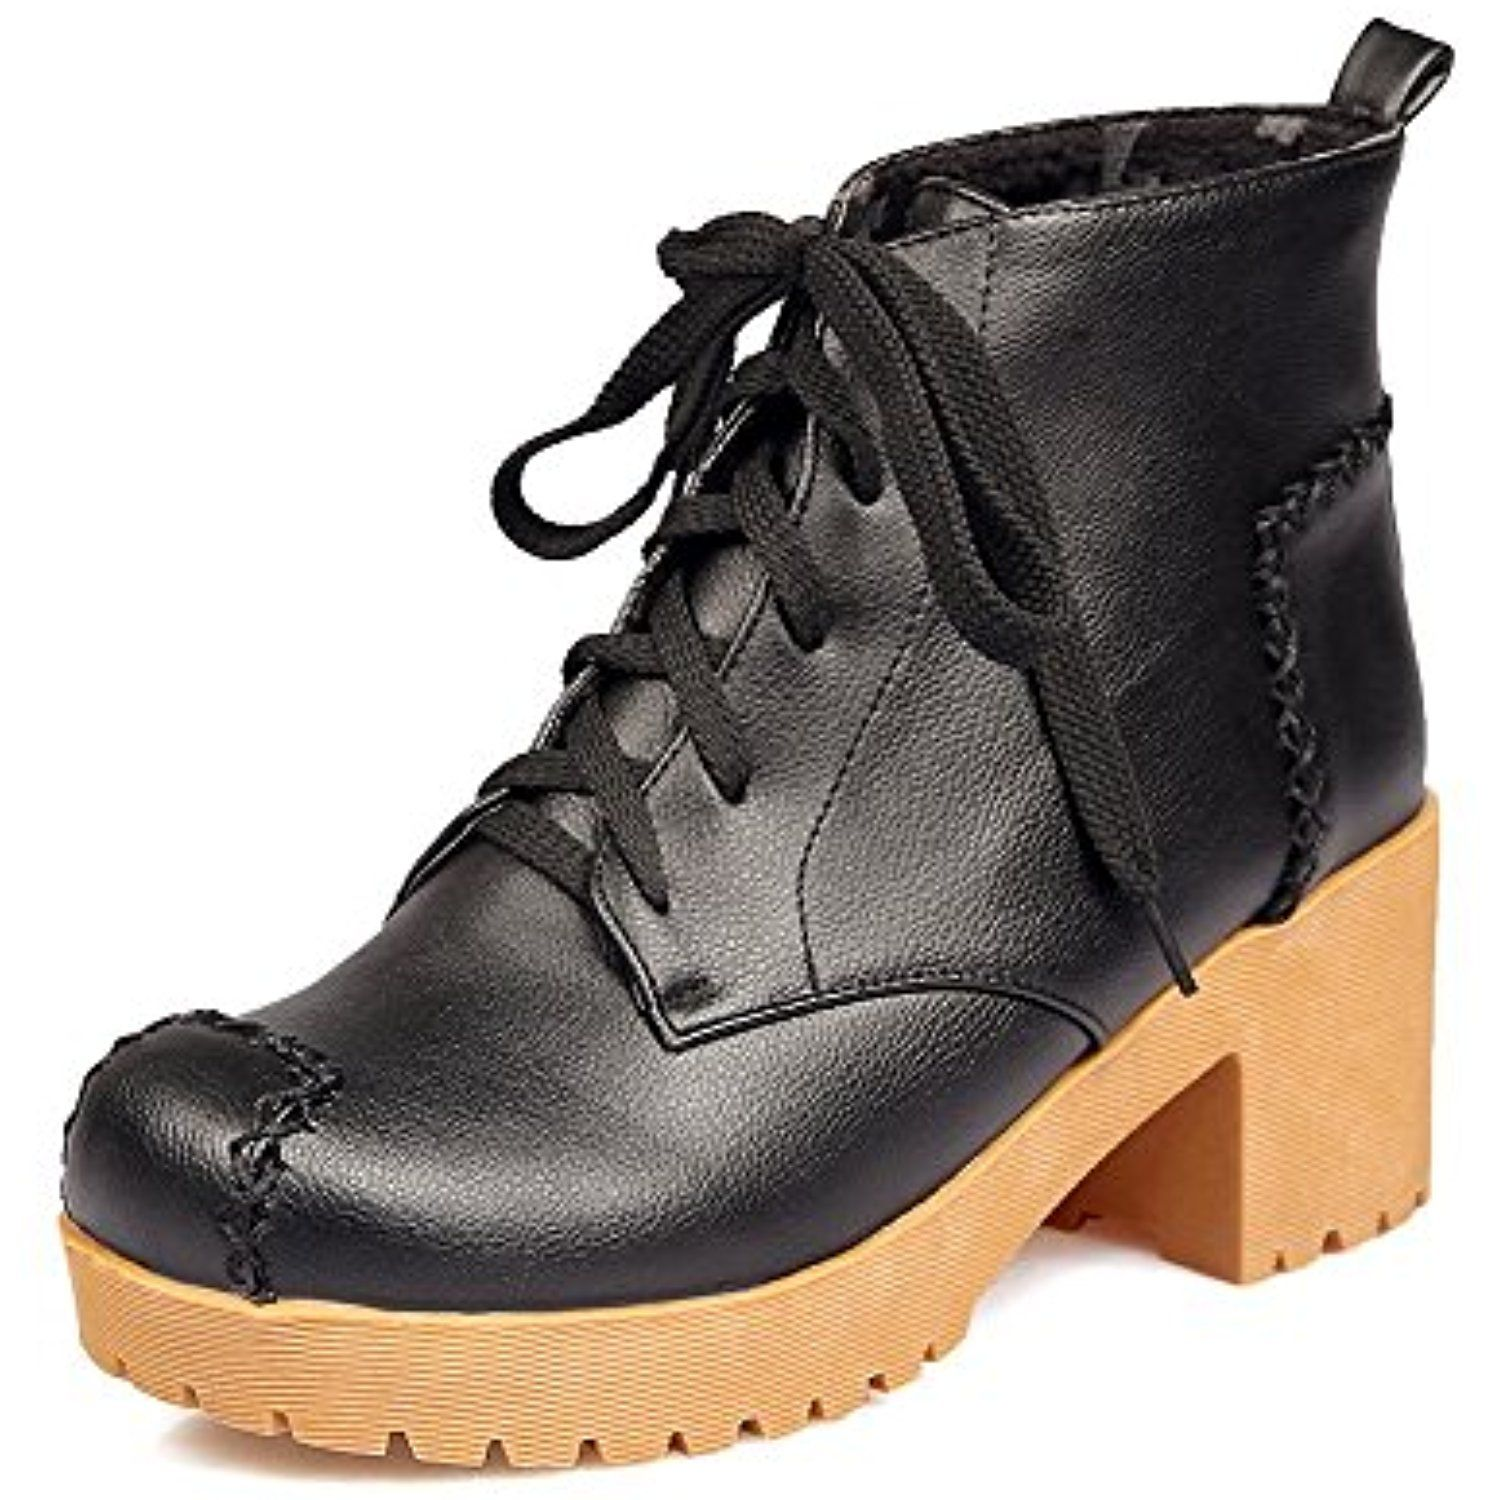 Women's Solid Soft Material Kitten Heels Lace Up Closed Round Toe Boots